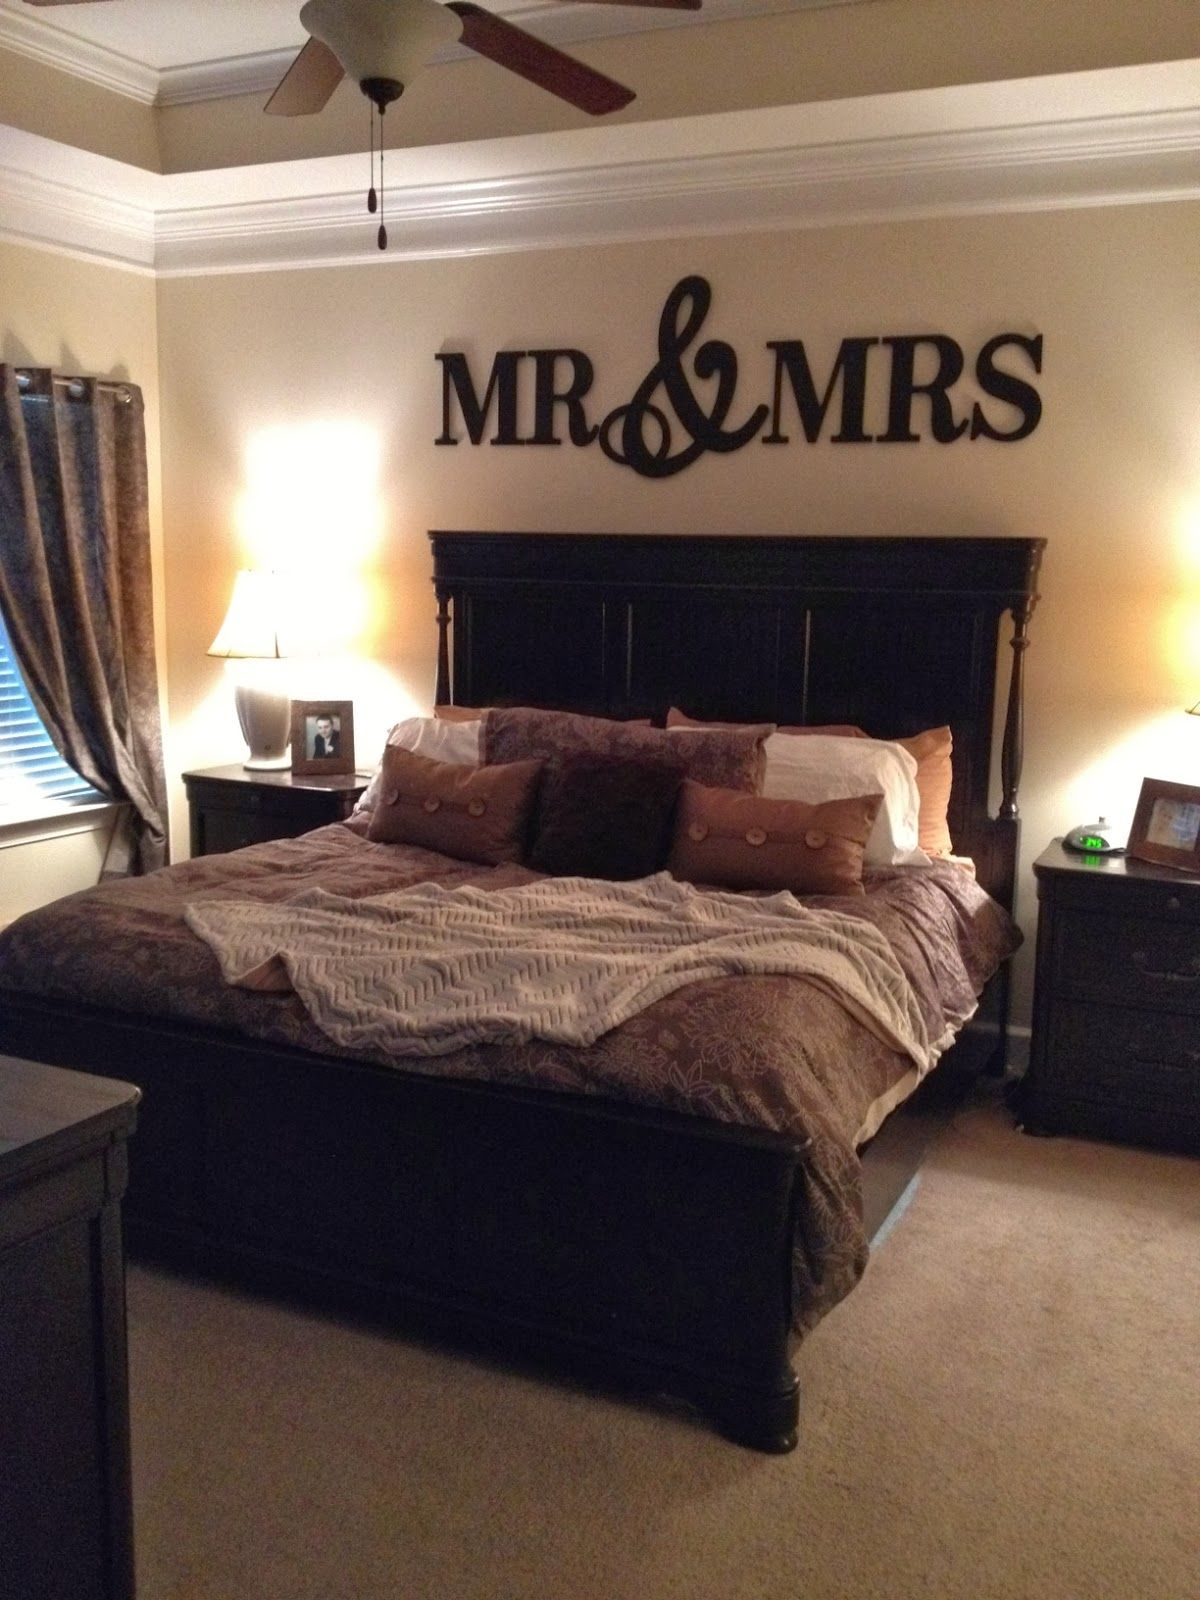 Bedroom Decor Letters & mrs wood letters, wall décor-painted wood letters, wall letters